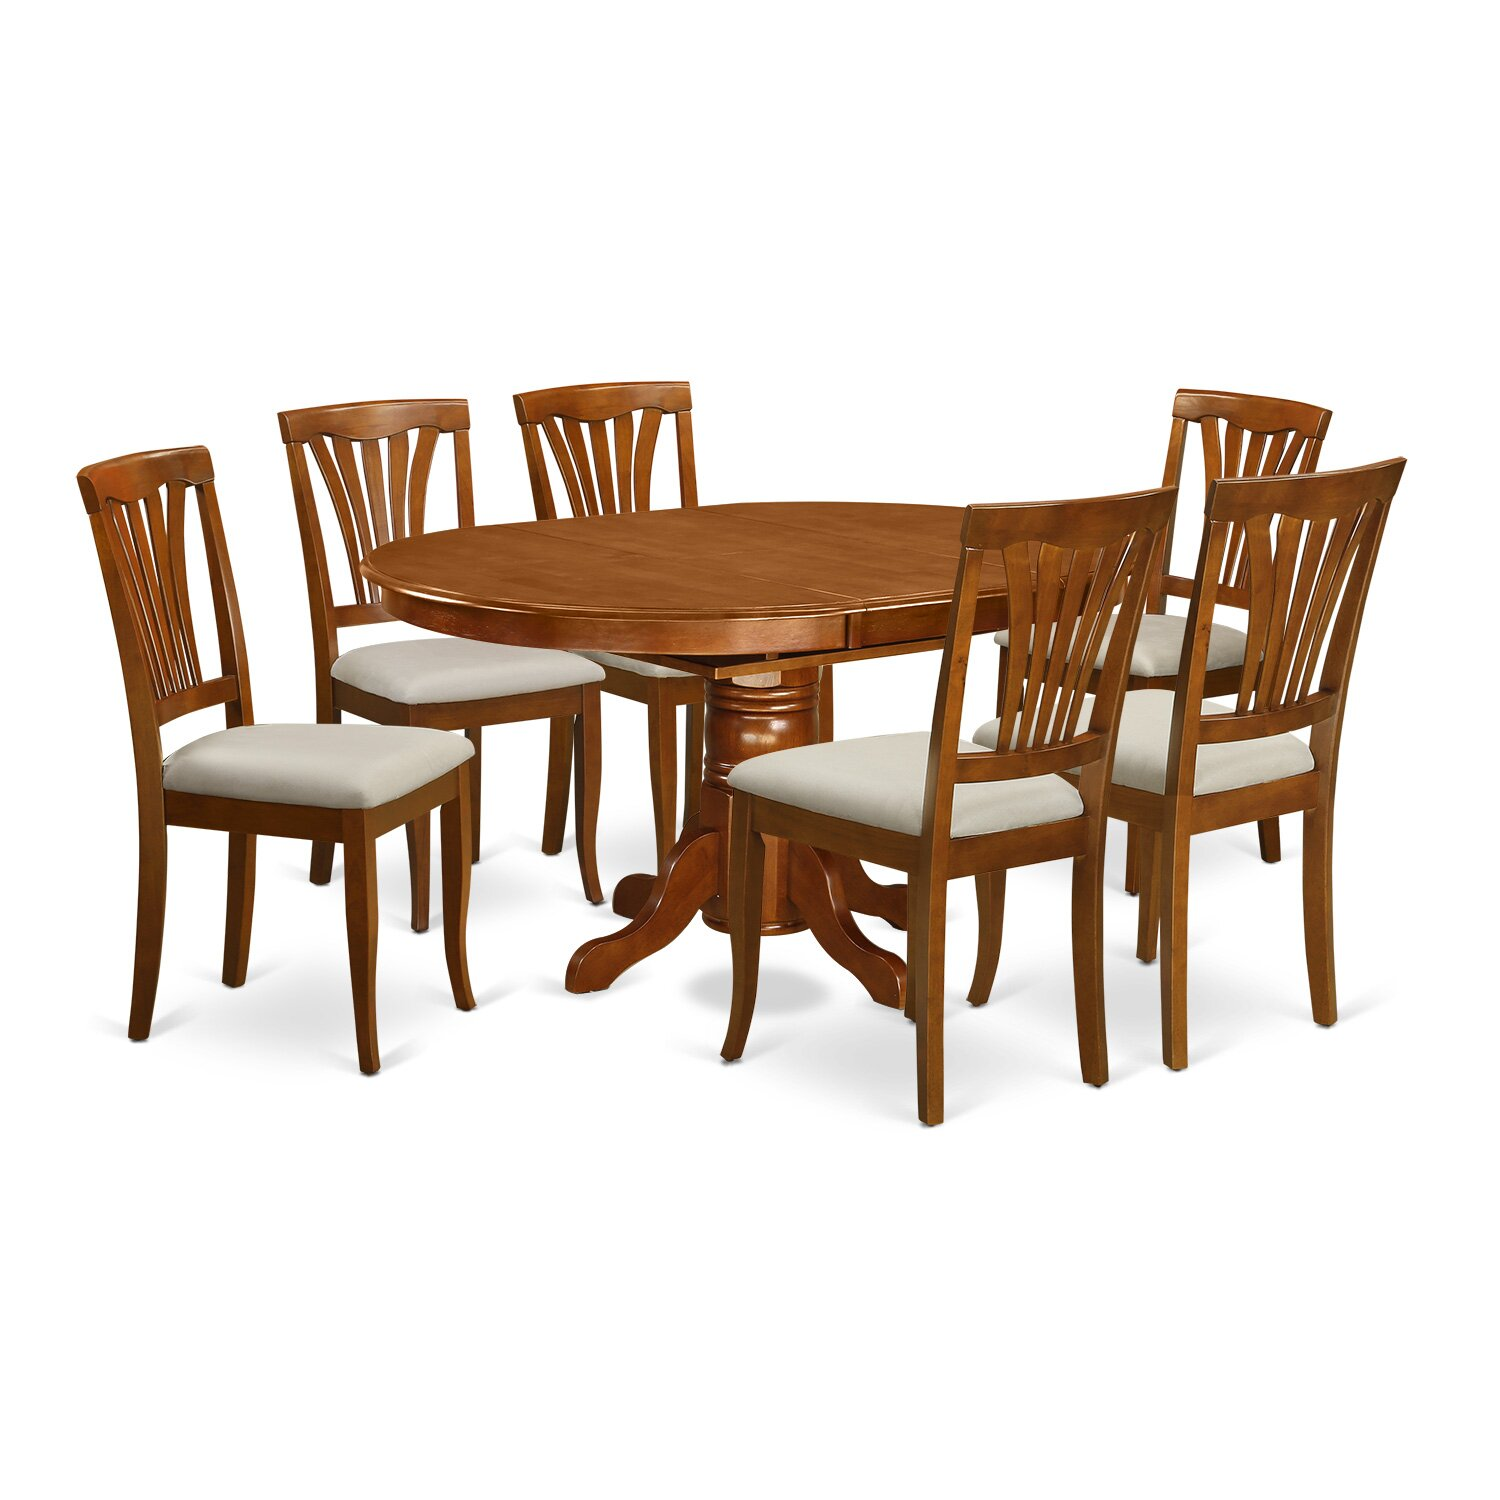 Wooden importers avon 7 piece dining set reviews wayfair for Furniture 7 credit reviews